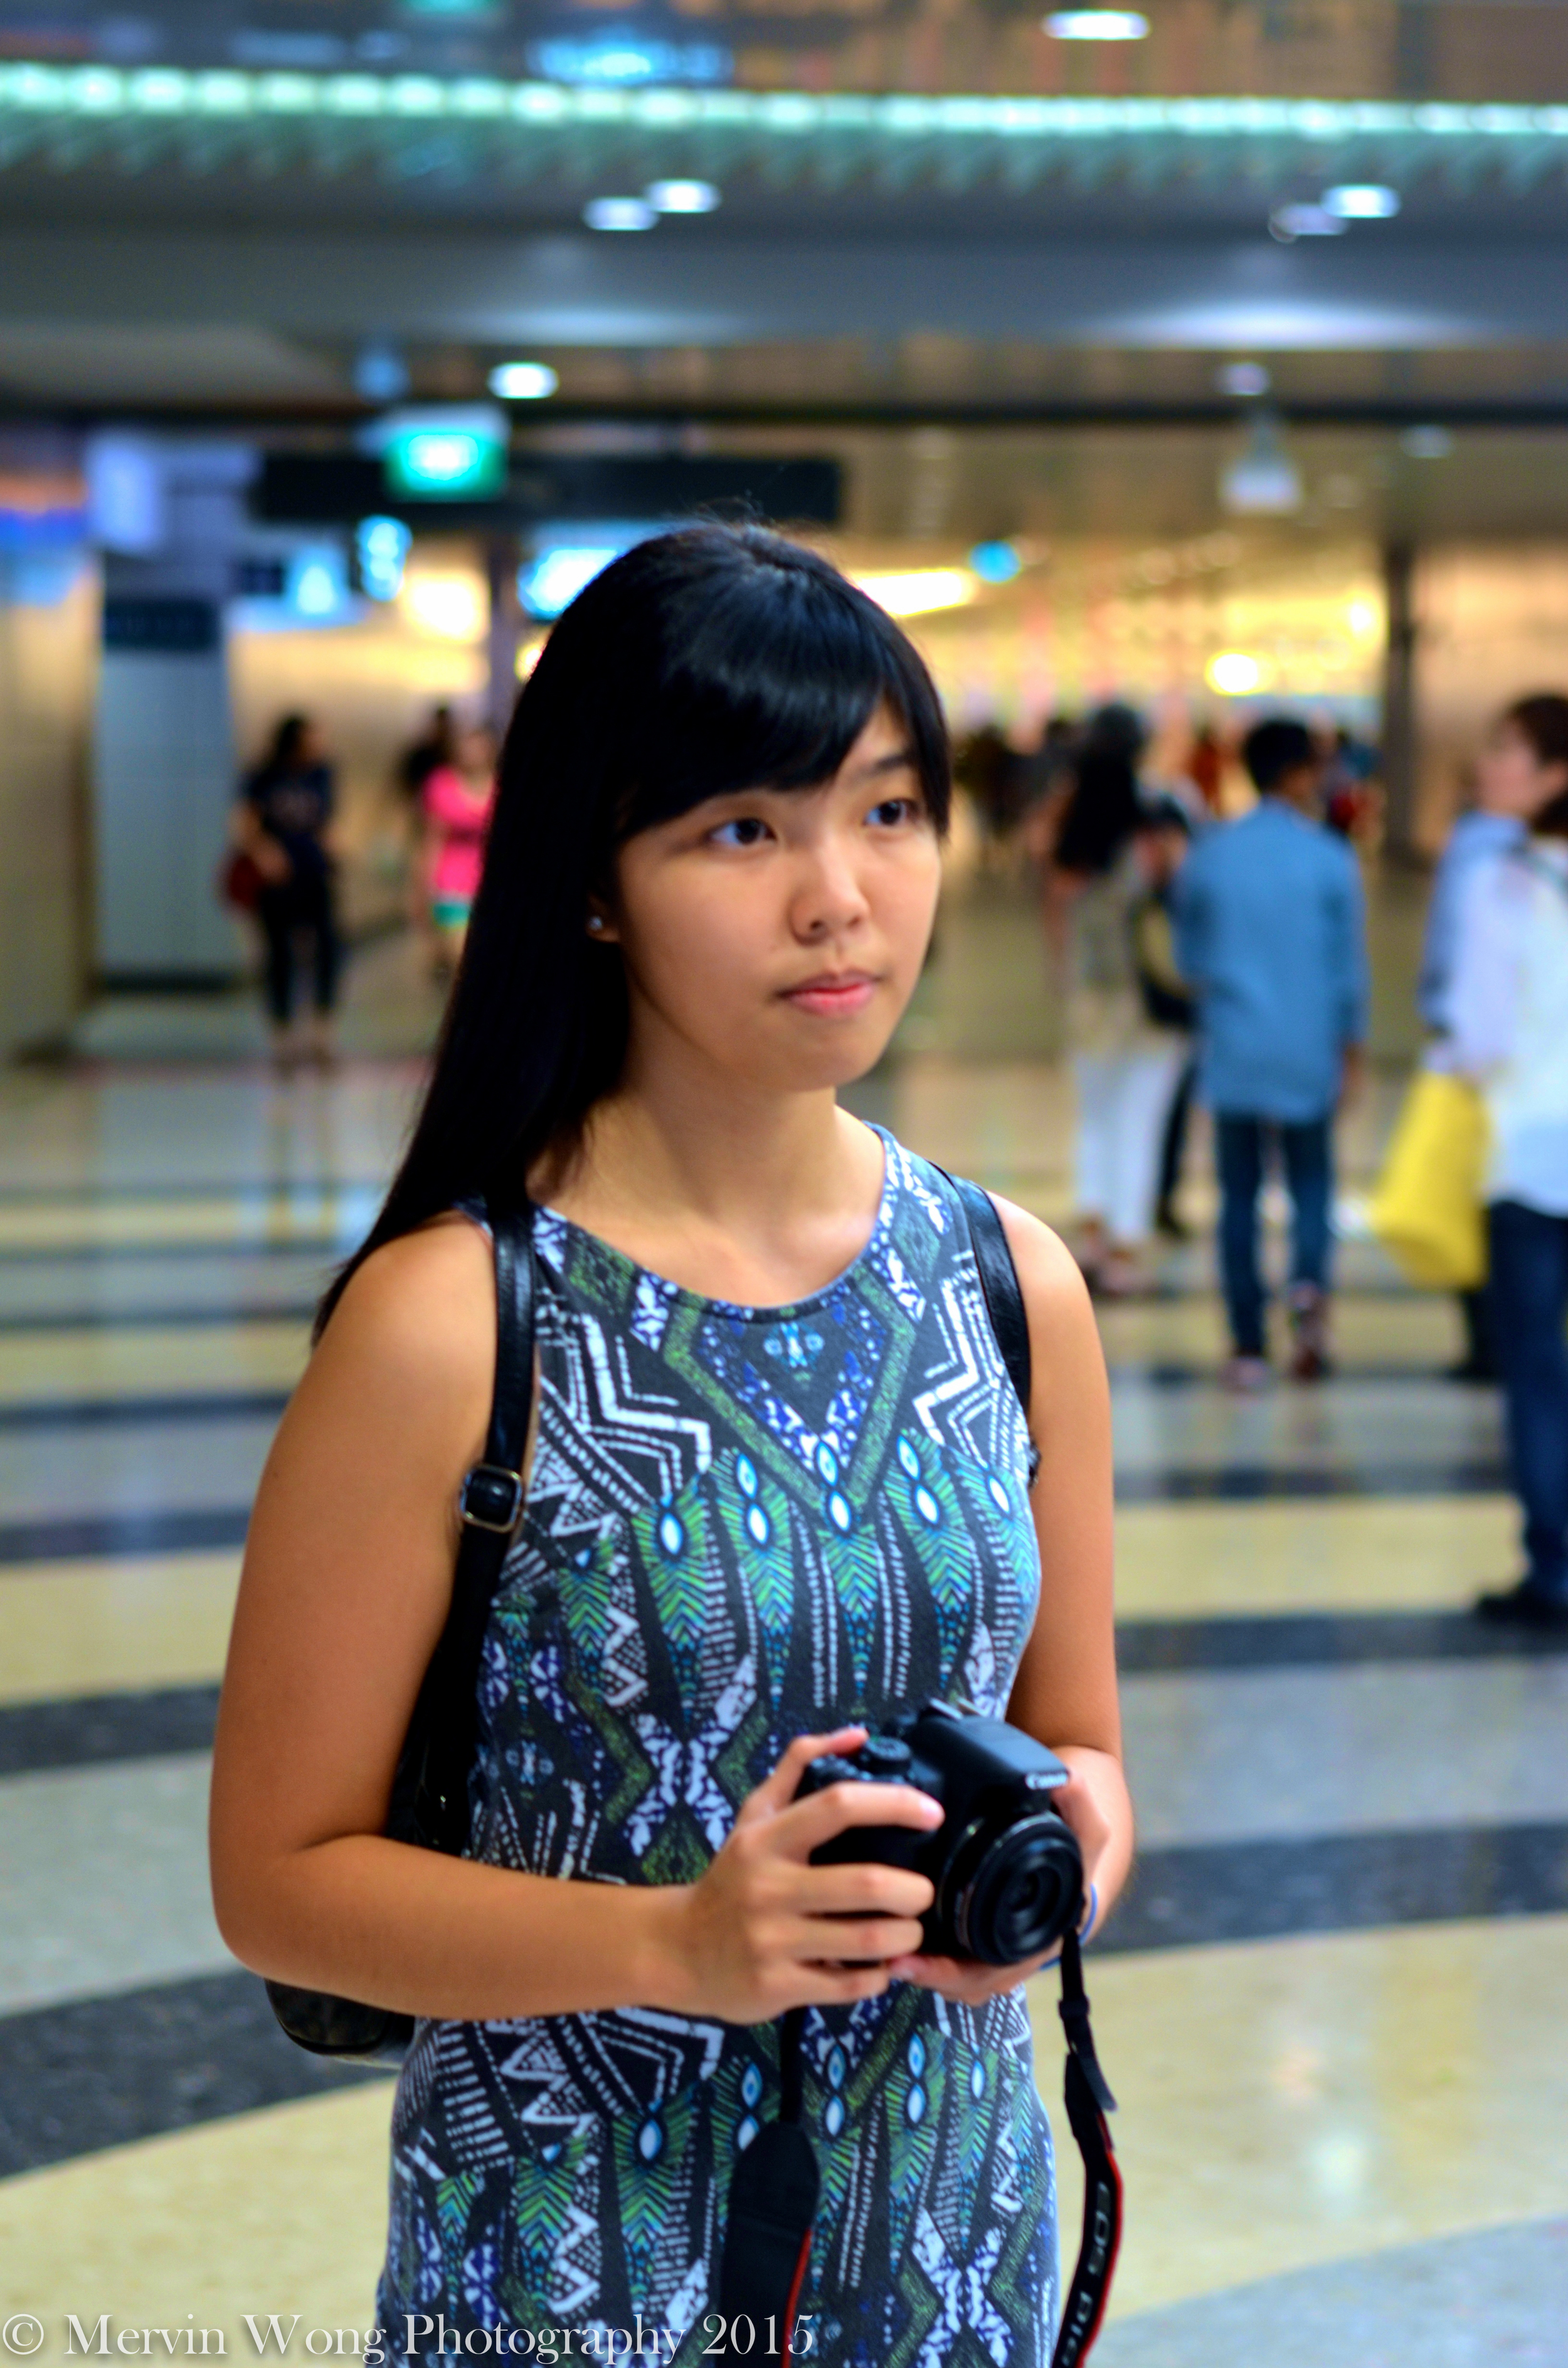 Mervin Wong Photography 2015 (1 of 52).jpg